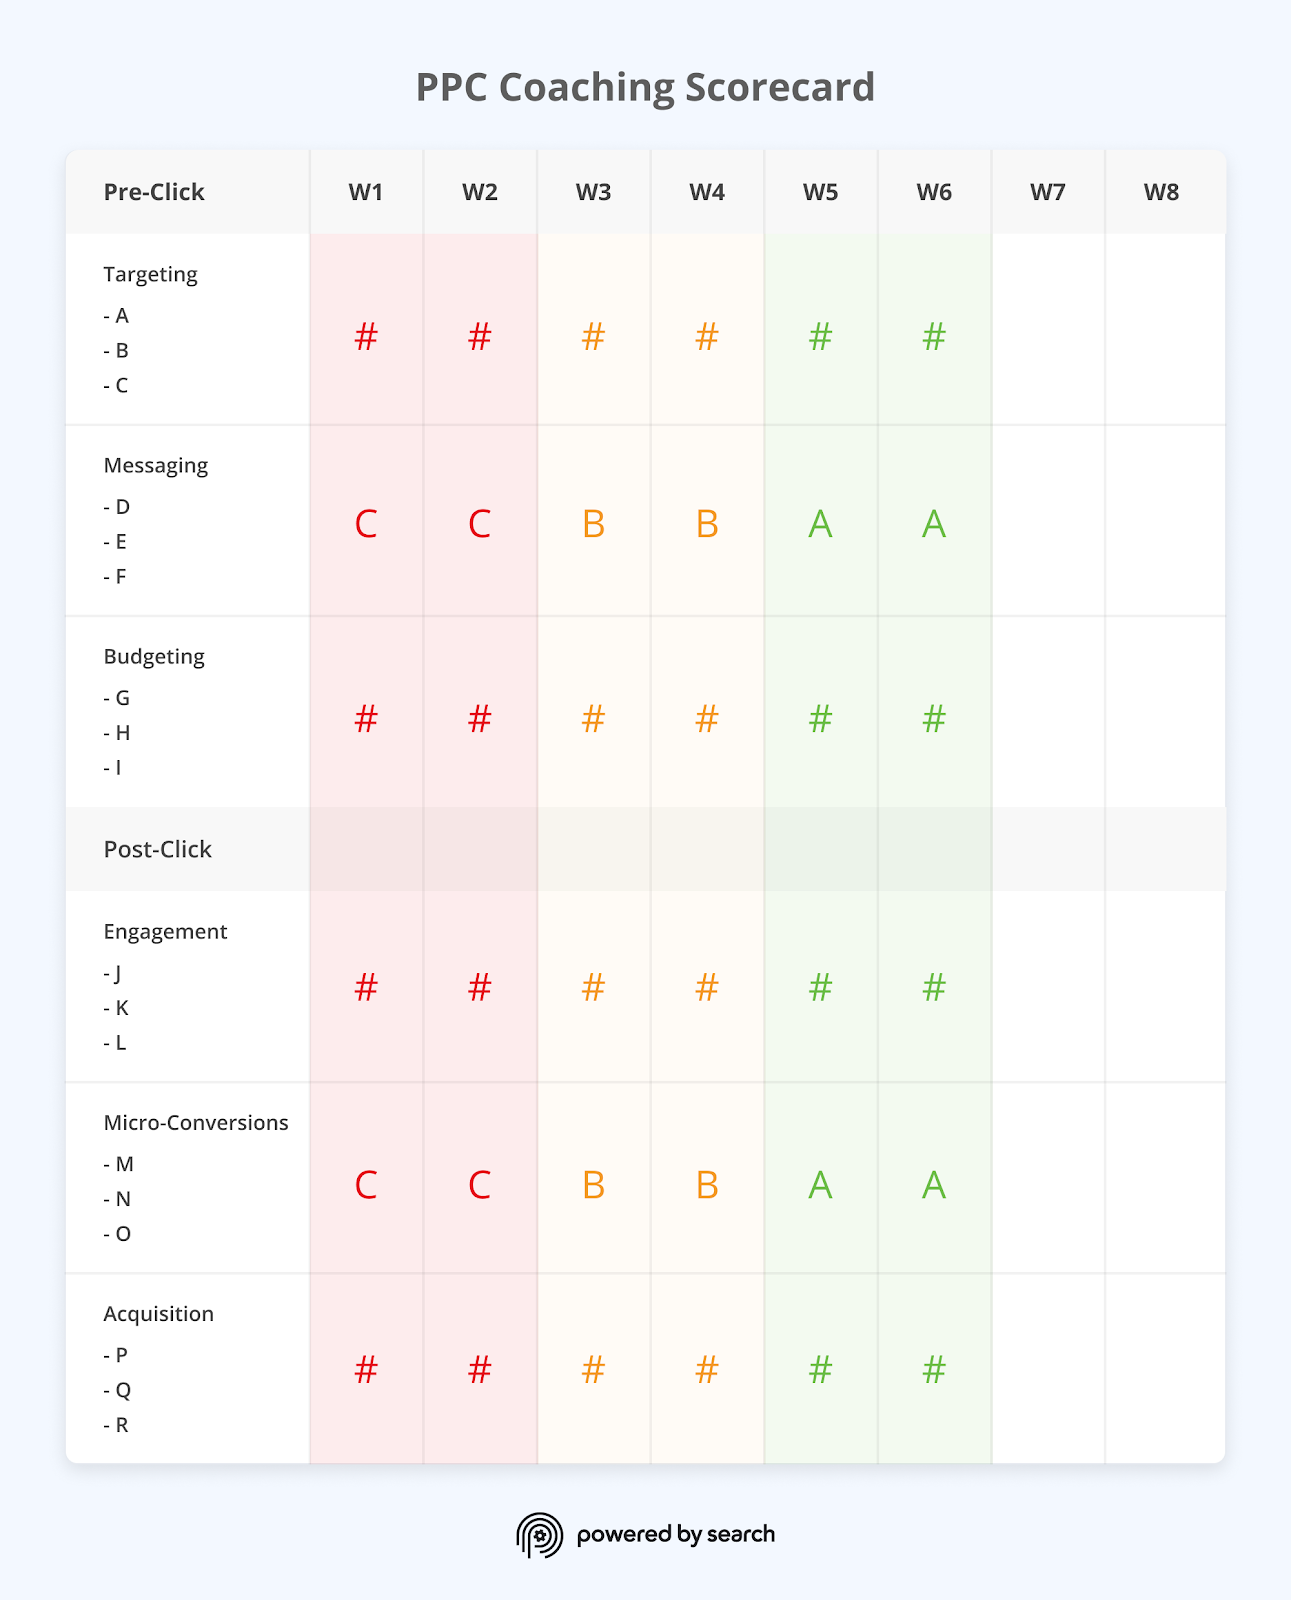 Powered by Search's PPC Coaching Scorecard: The scorecard we use in our Fractional CMO service for B2B SaaS.